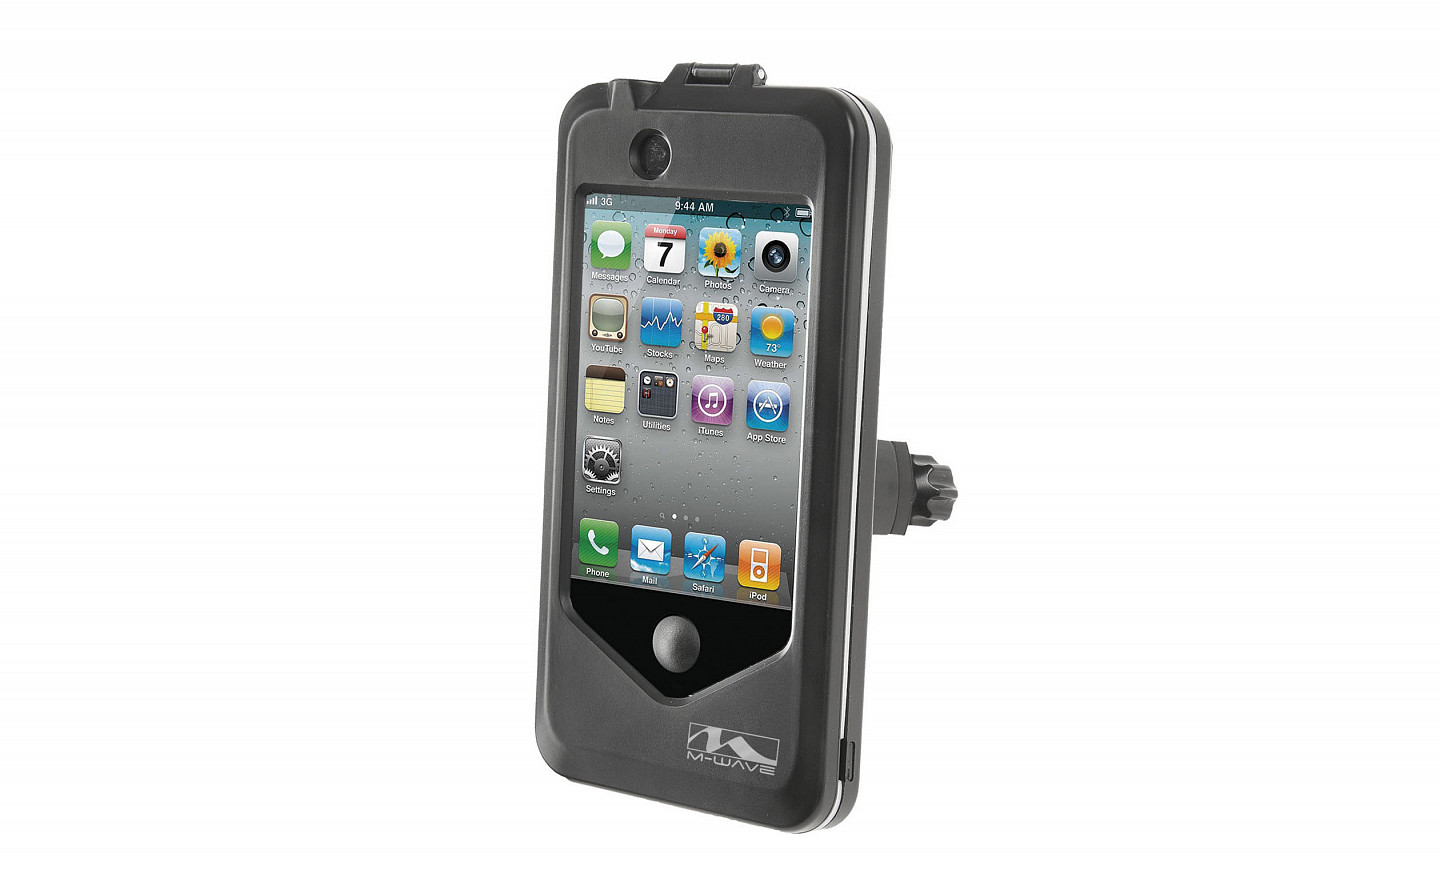 M-WAVE Eindhoven HC 1 hard case for mobile devices